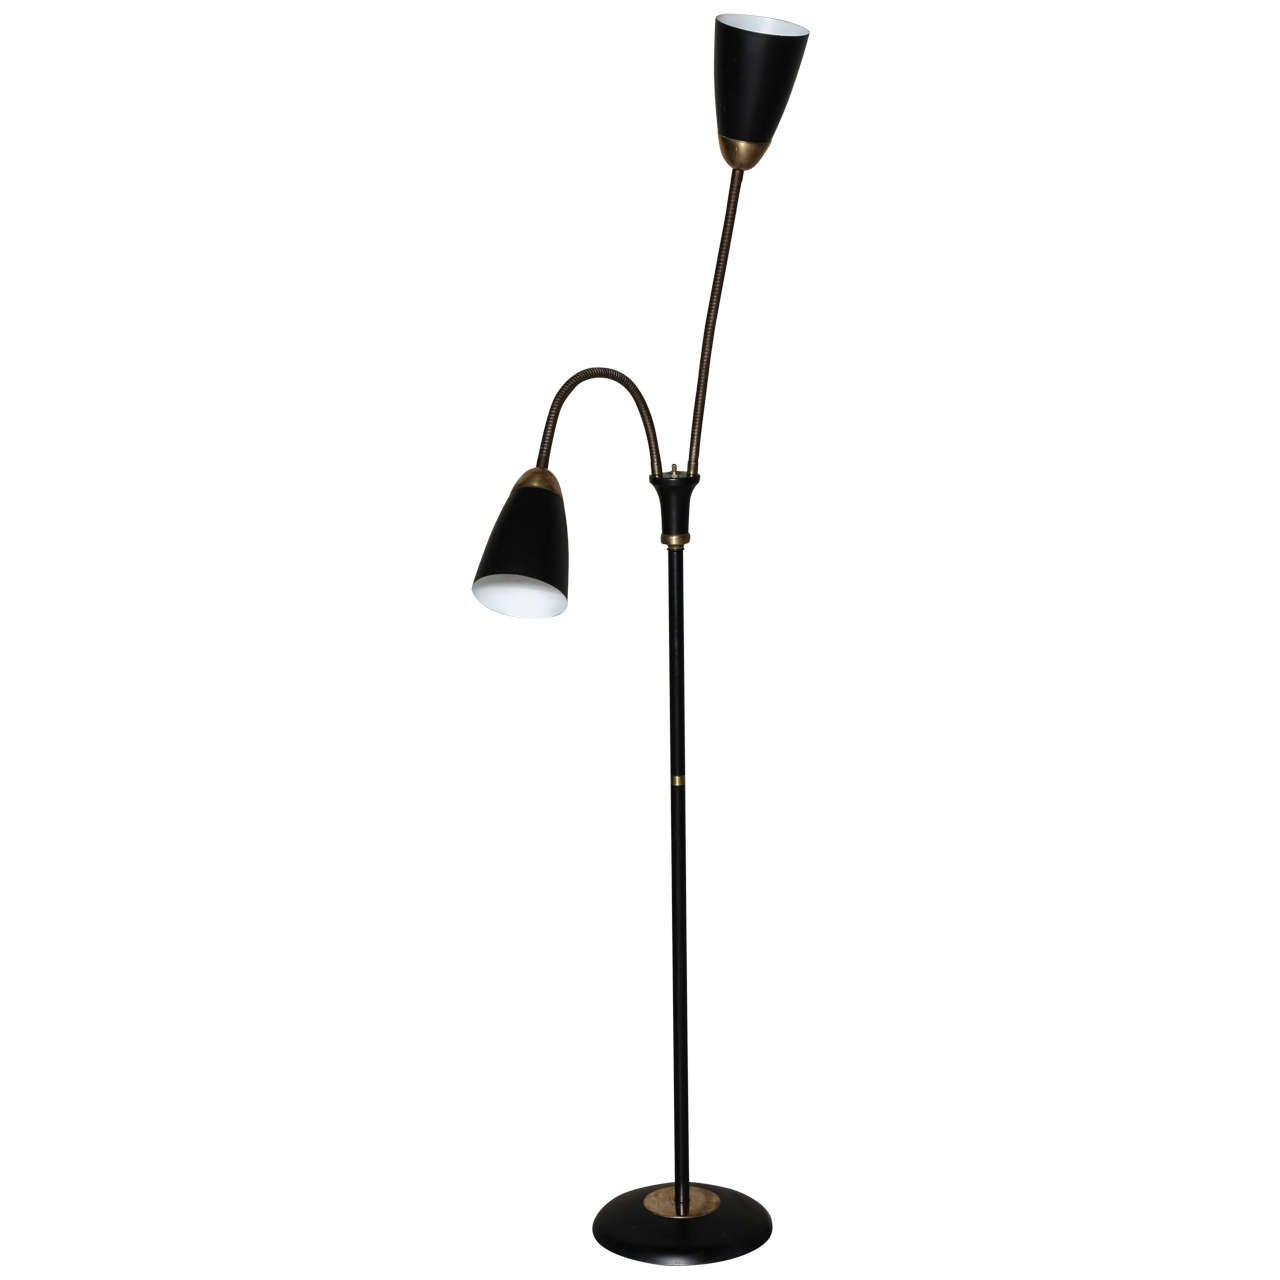 Mid century double gooseneck floor lamp at 1stdibs for Double floor lamp reading